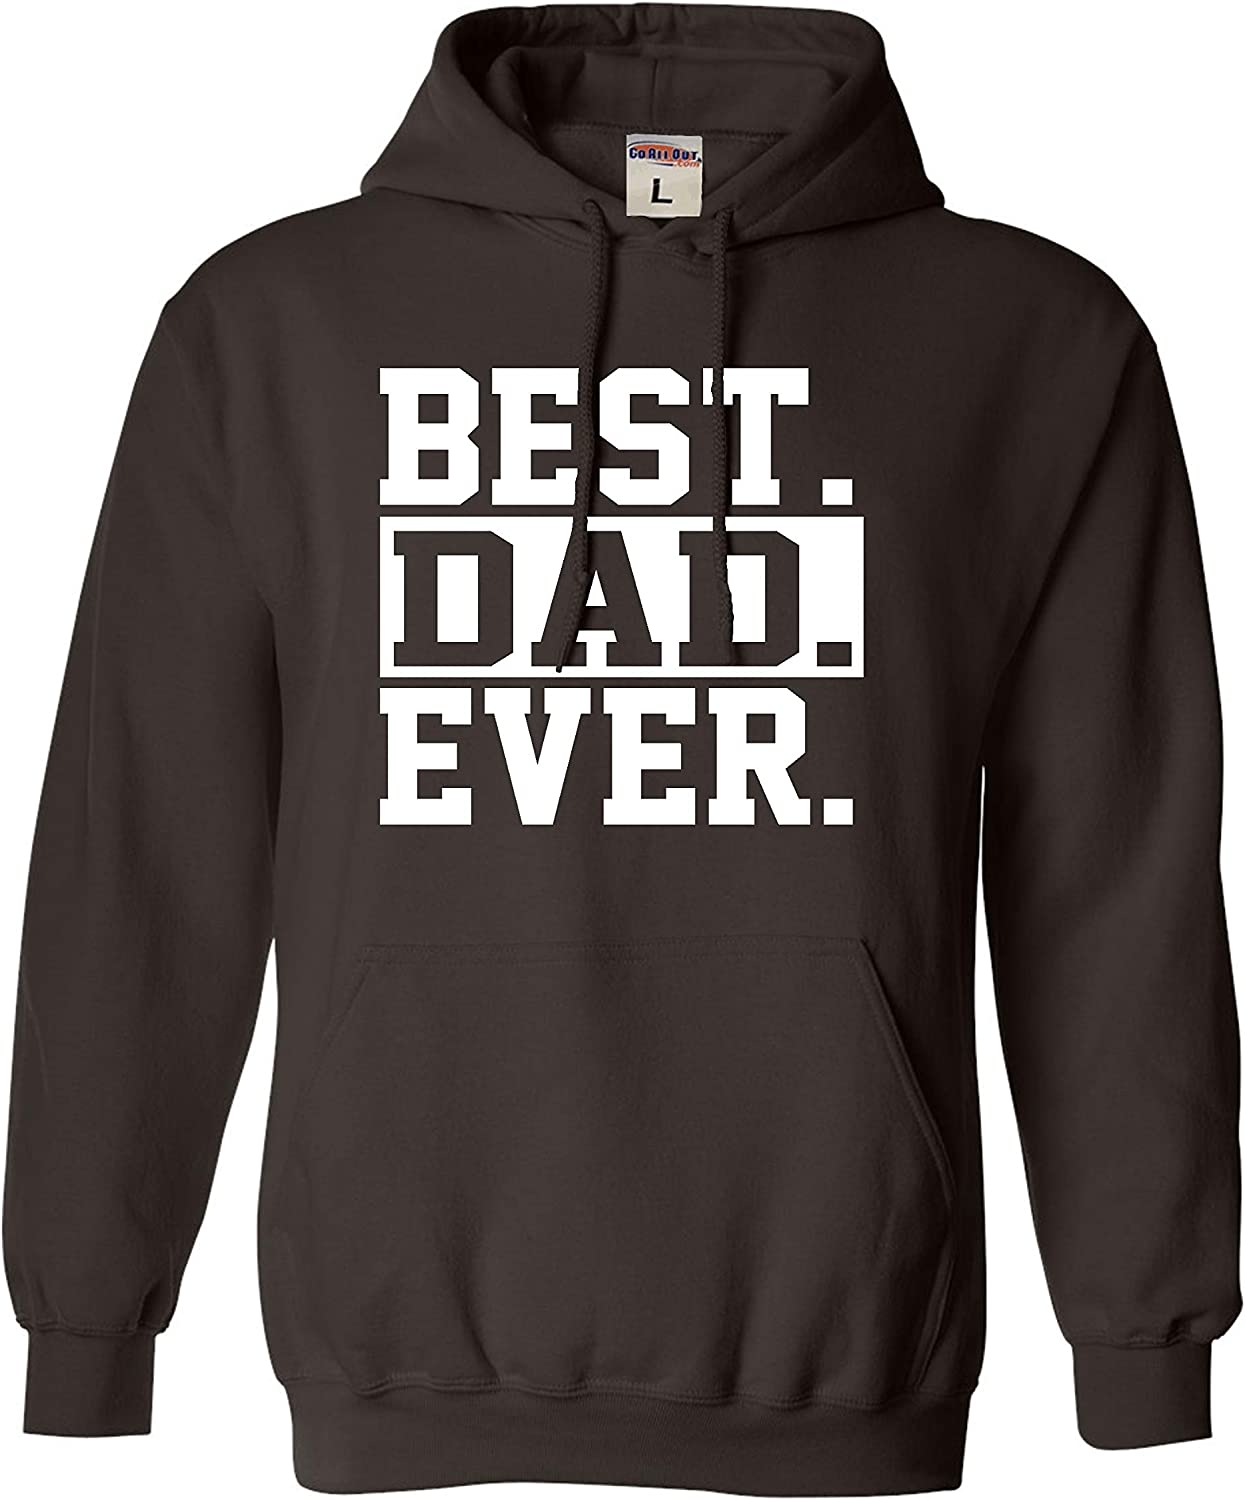 Go All Out Adult Best Dad Ever Regular dealer Fathe World's Greatest Max 69% OFF #1